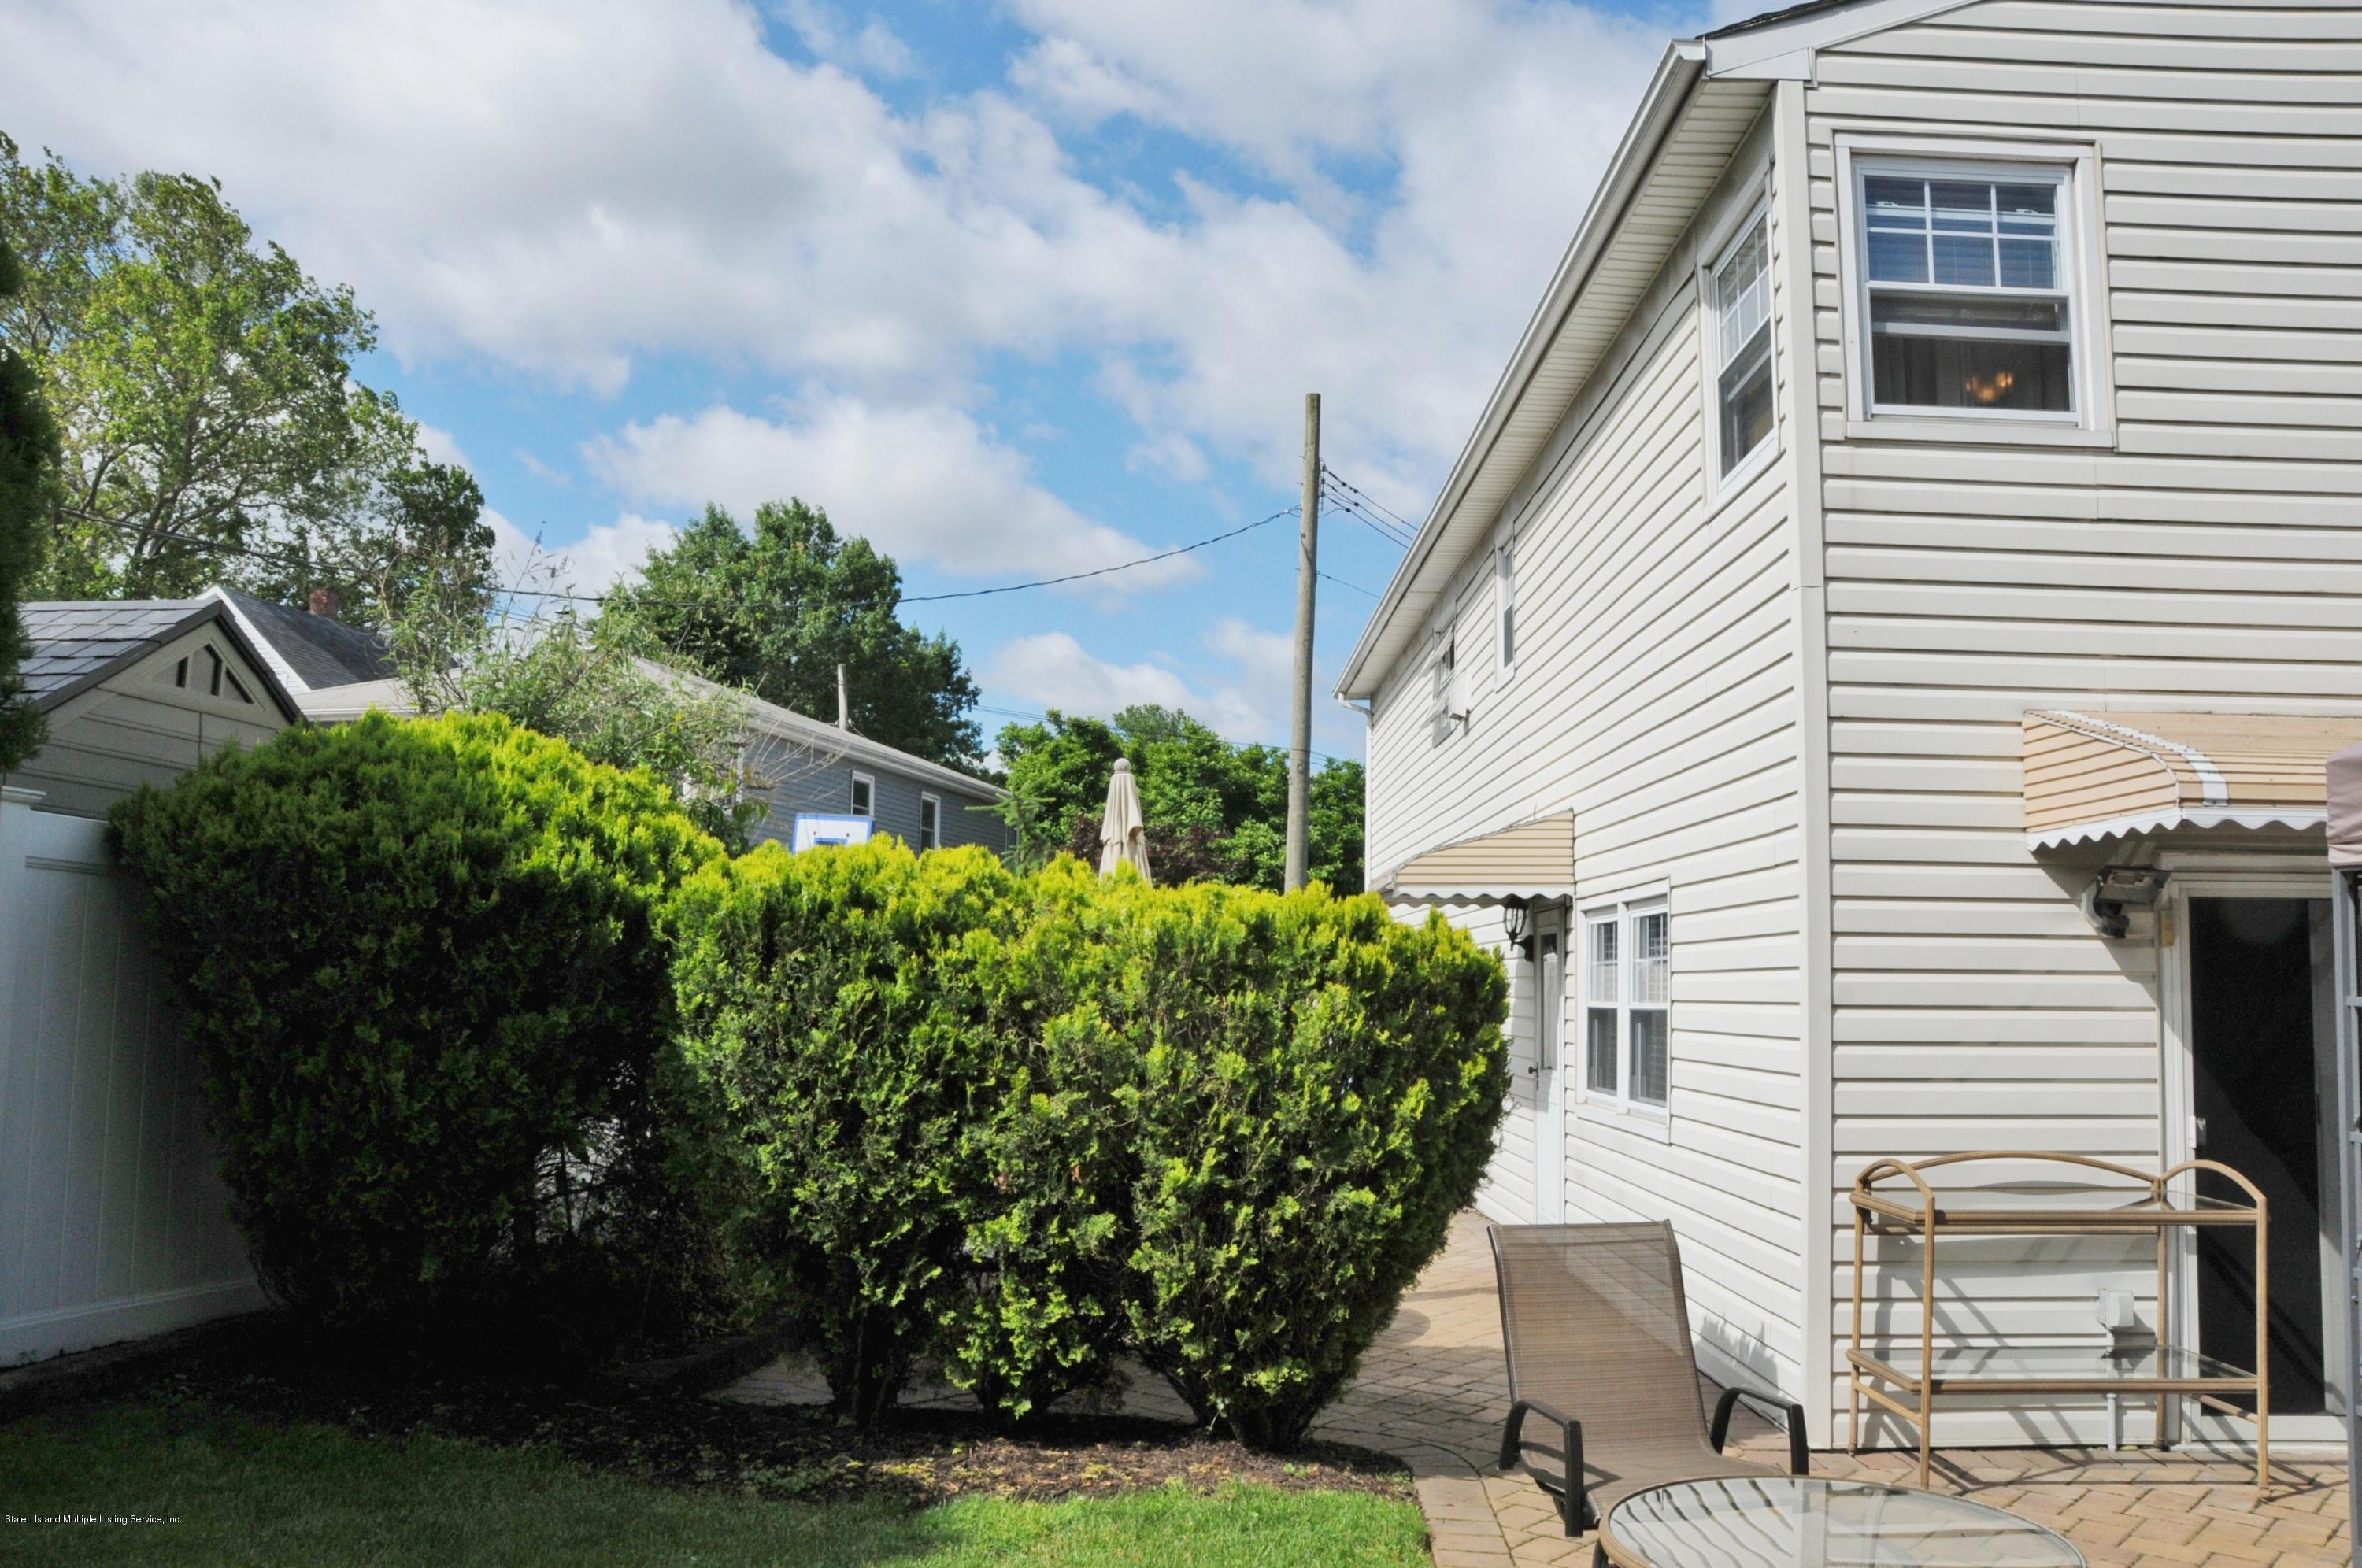 Single Family - Detached 41 Prices Lane  Staten Island, NY 10314, MLS-1129754-50